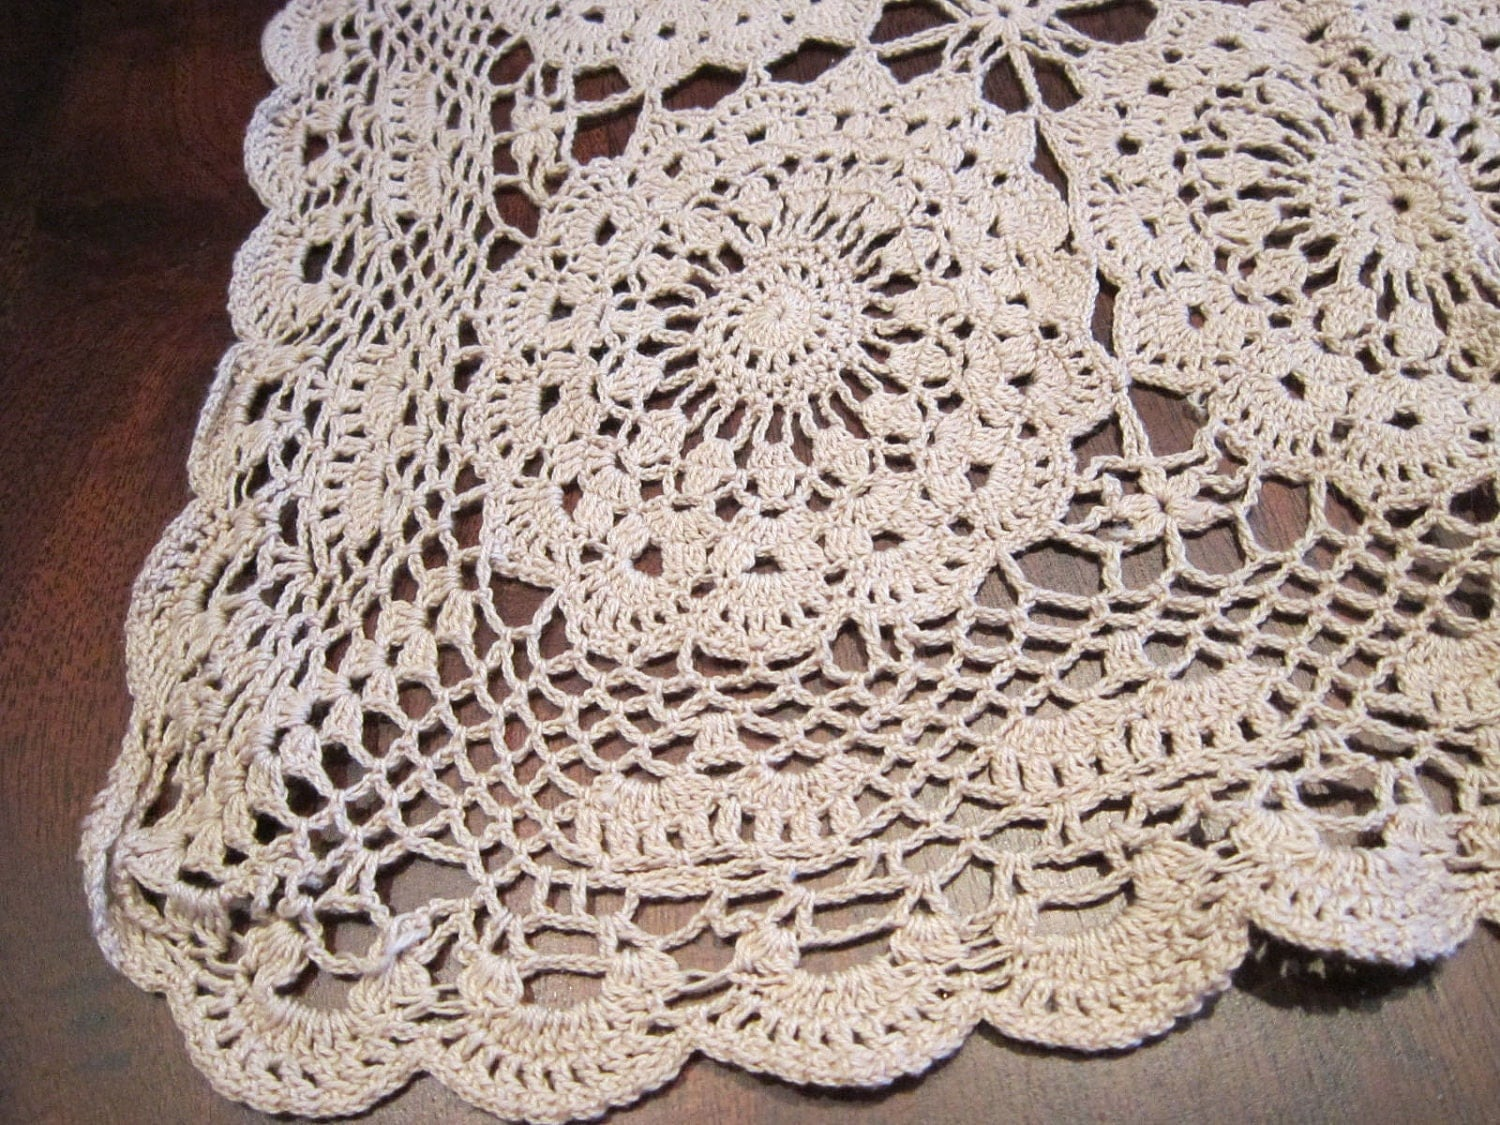 Free Thread Crochet Patterns For Table Runners : THREAD CROCHET TABLE RUNNER PATTERN ? Easy Crochet Patterns